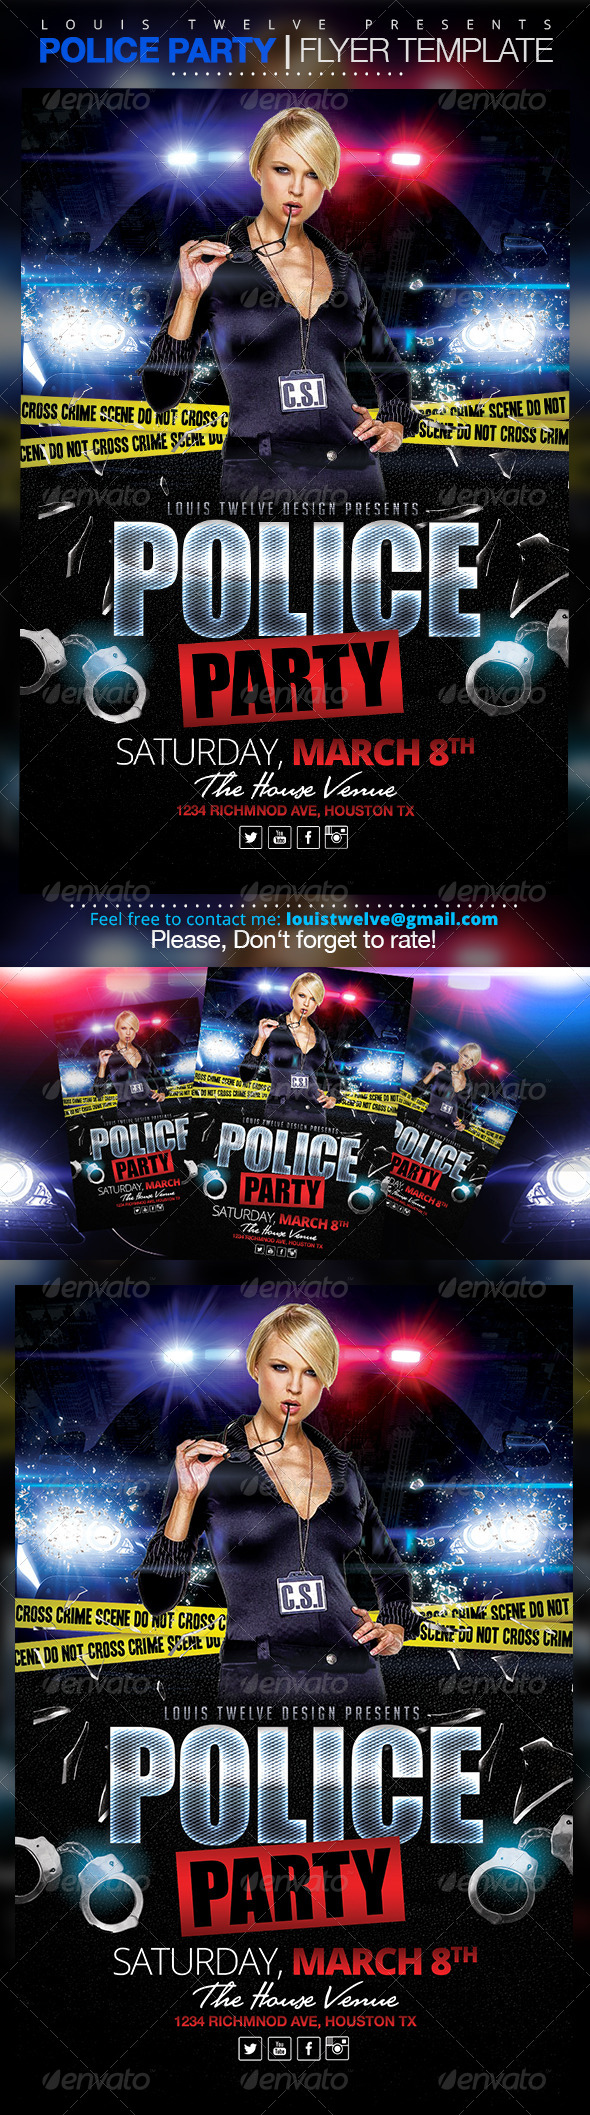 Police party flyer template by louistwelve design graphicriver police party flyer template flyers print templates saigontimesfo